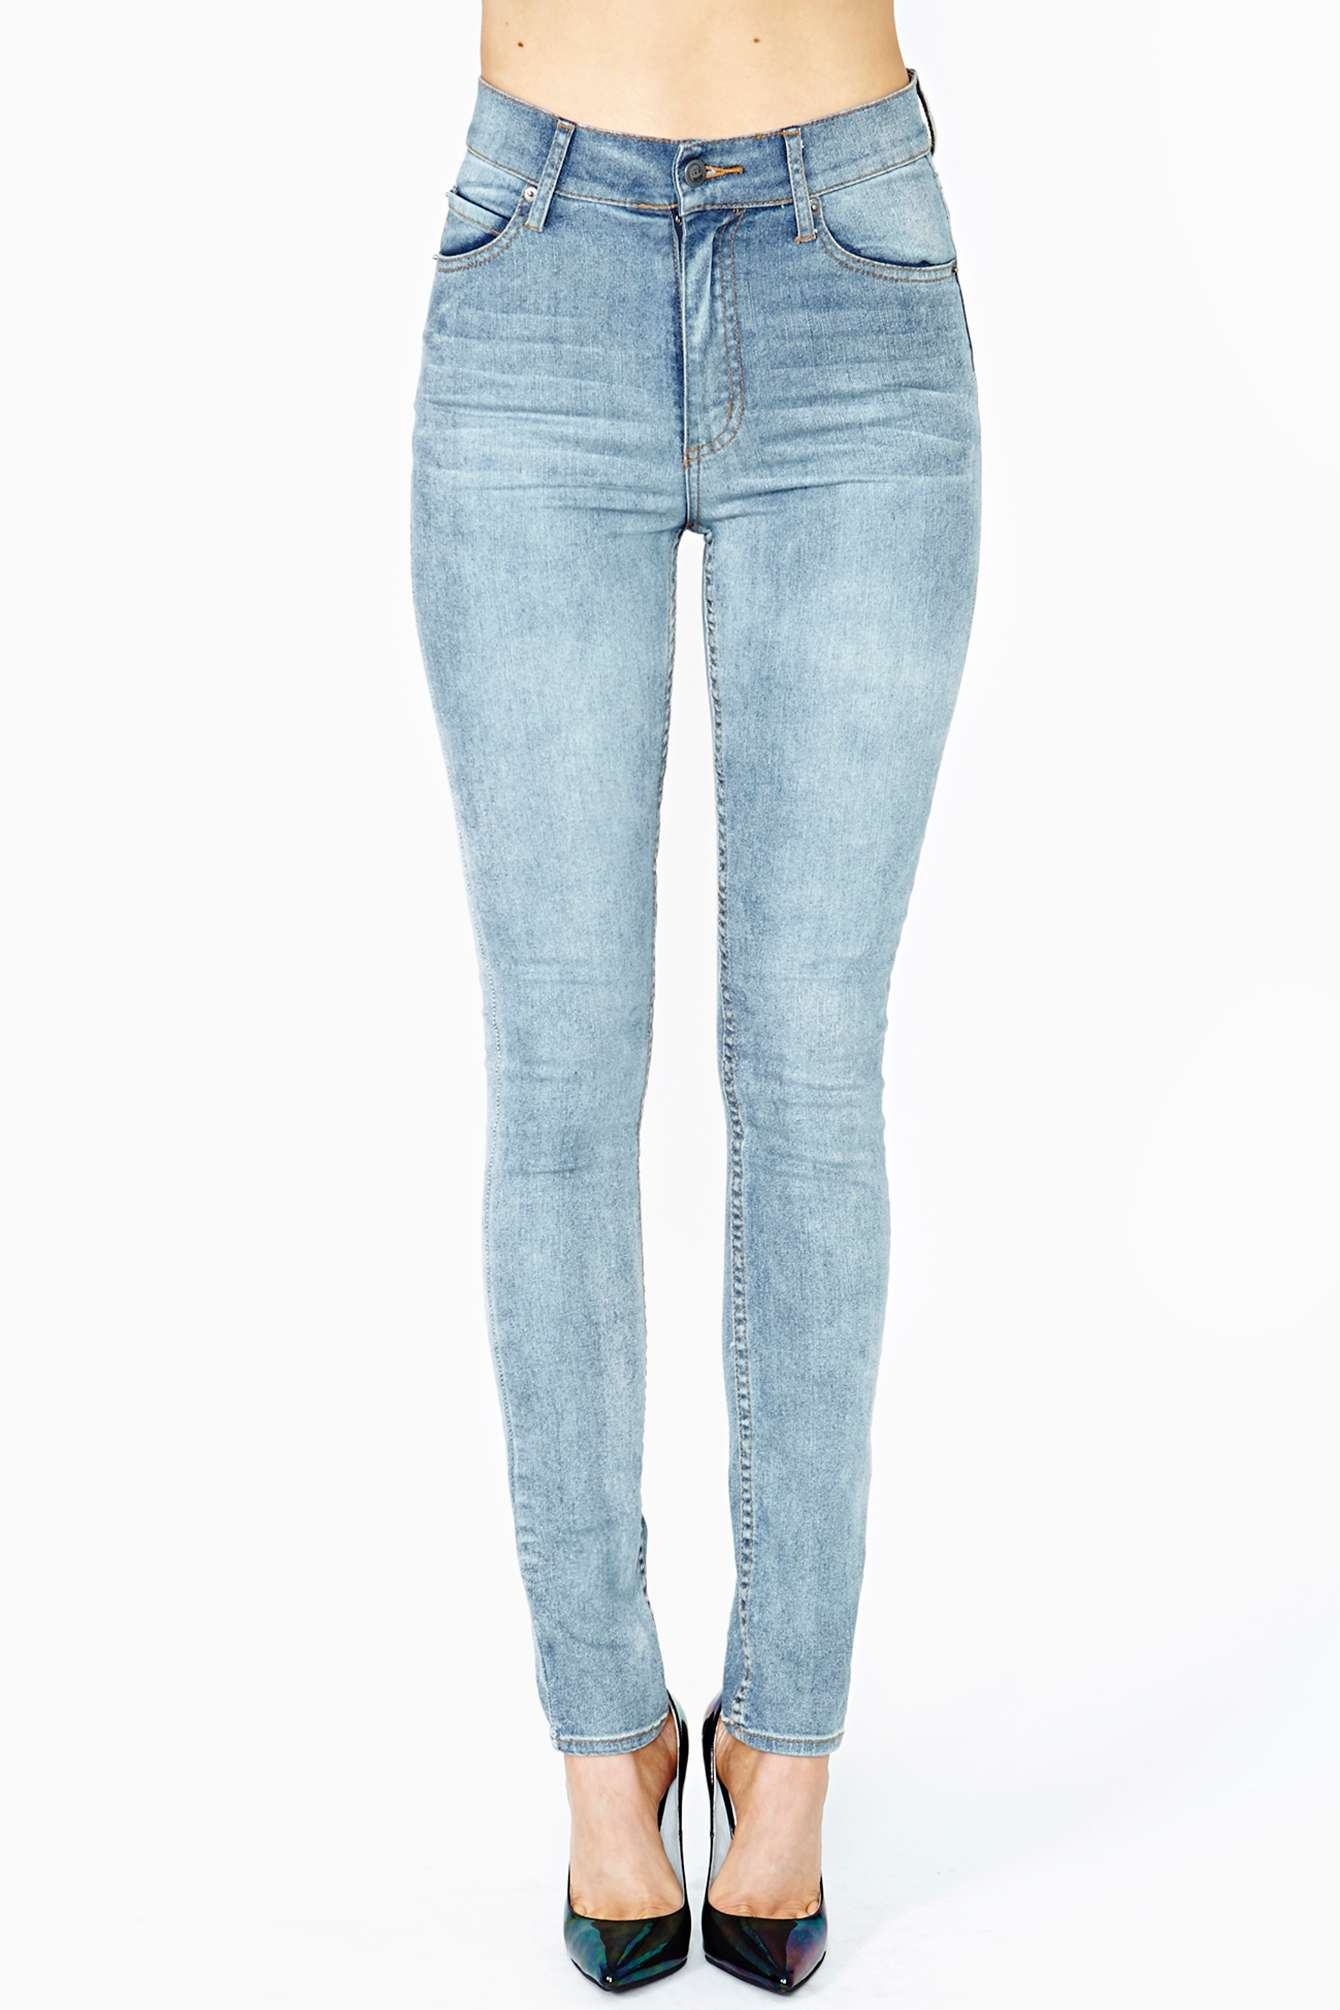 Cute Jeans Cheap - Jeans Am